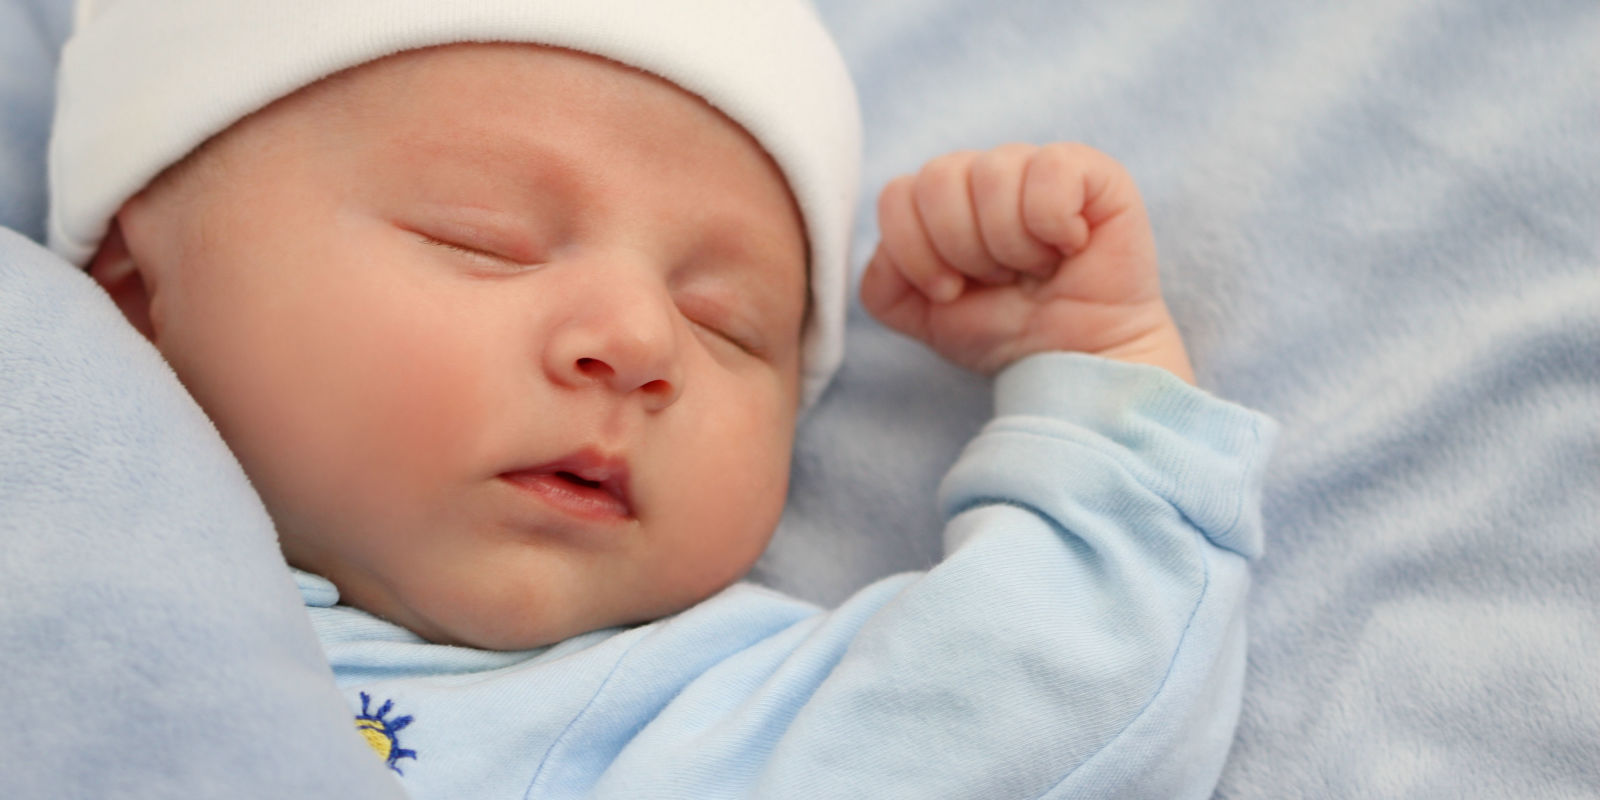 Baby Sleep Training Methods How To Get A Baby To Sleep